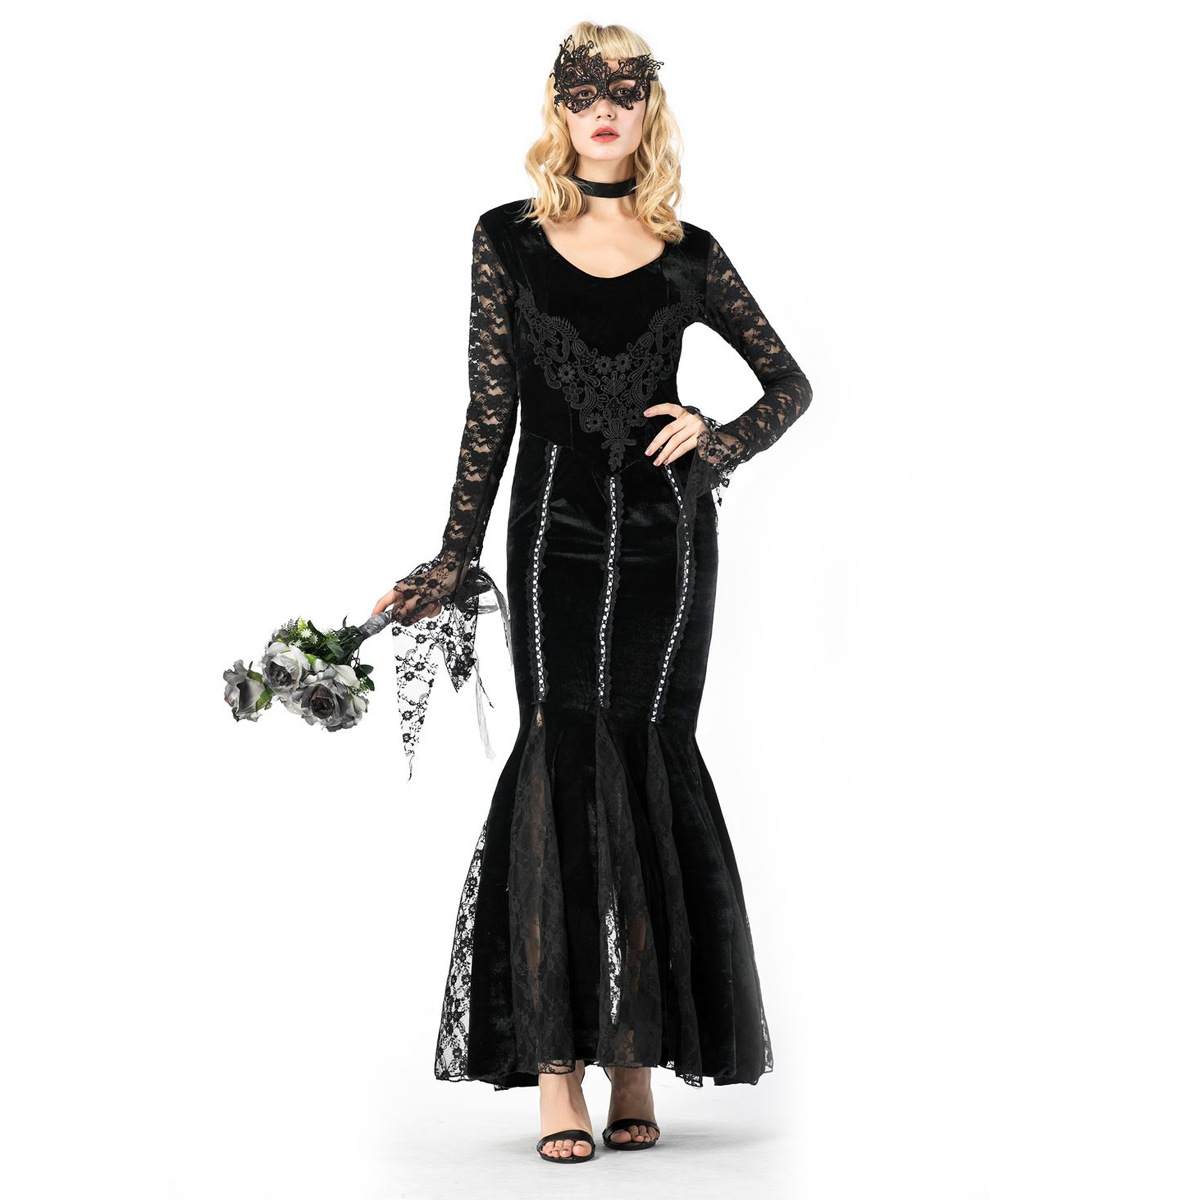 Halloween Black Lace Edge vampire roleplaying costume Tuxedo Dress long dress